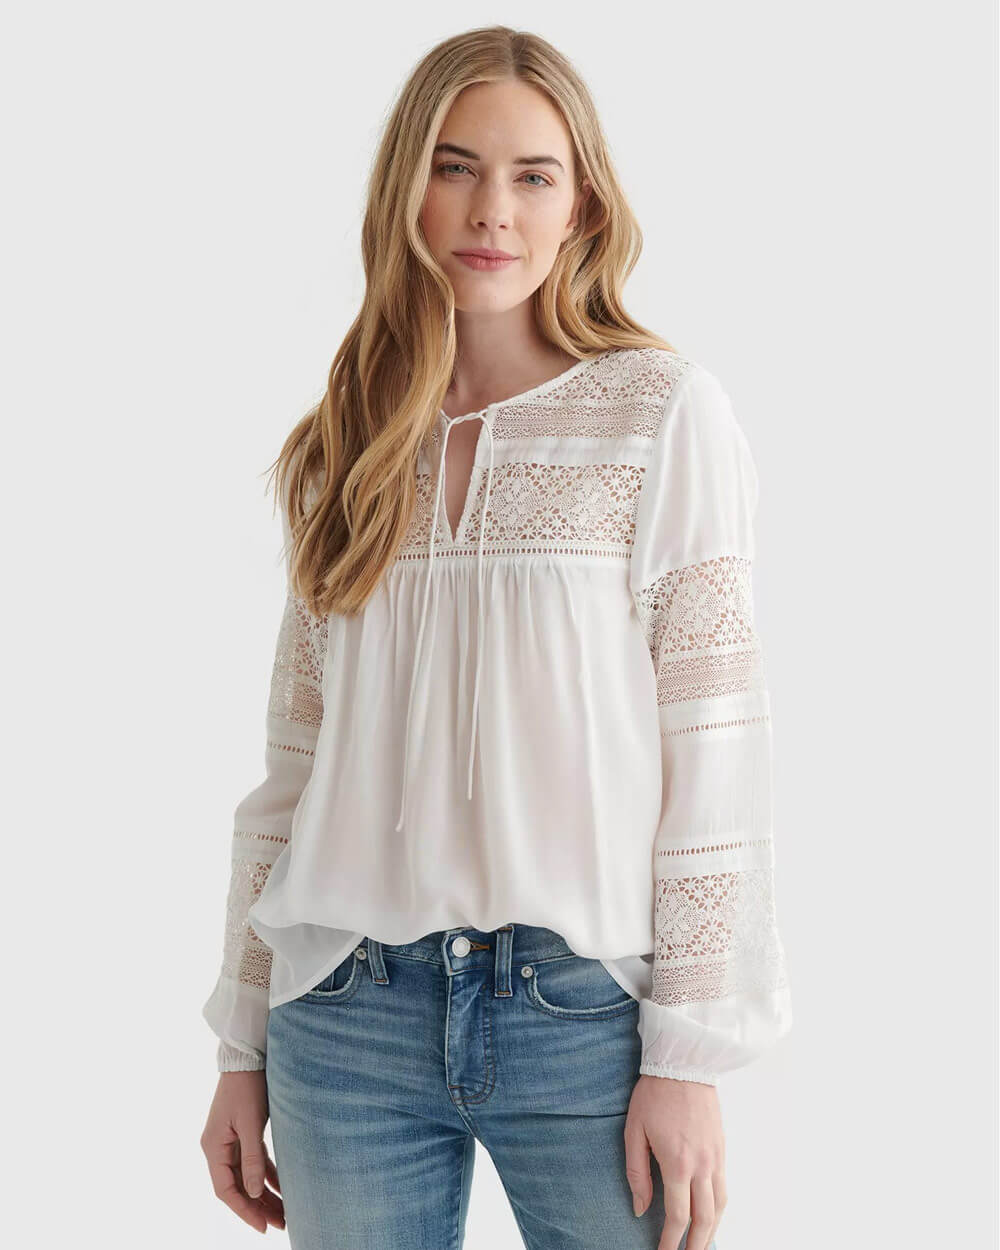 Lucky Brand boho style stores like Anthropologie